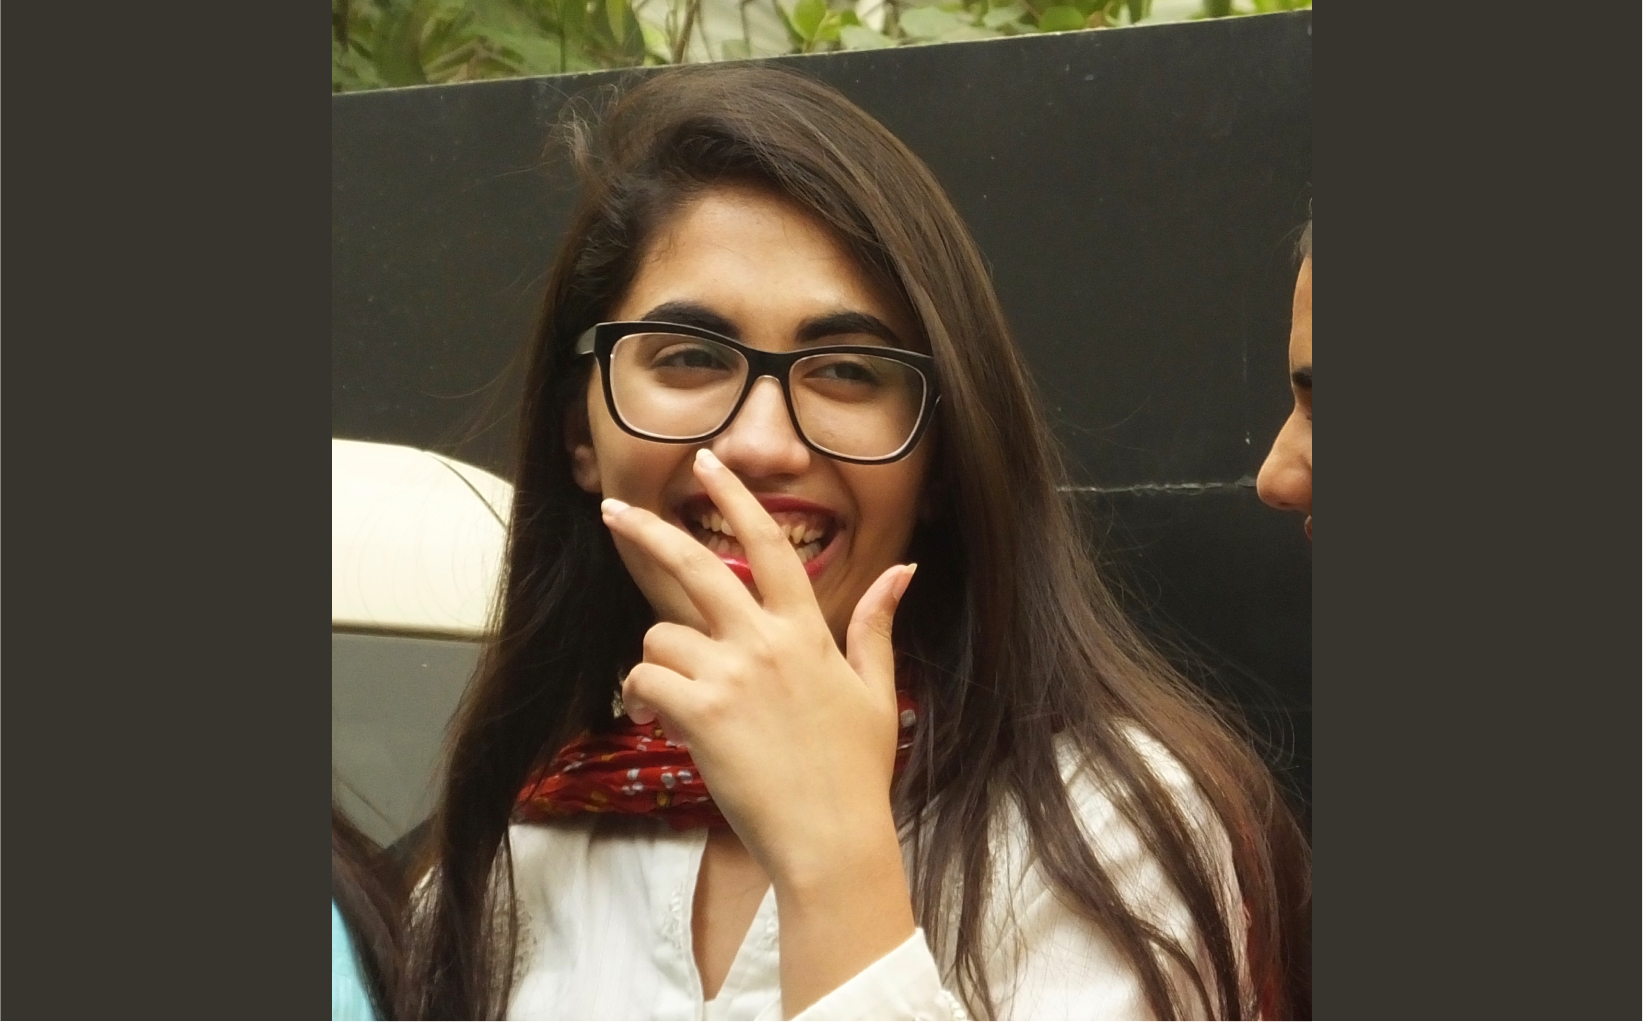 Photo of Nawaal. She has long brown hair, and she's wearing a white shirt, a red scarf, black glasses, and red lipstick. She's holding up her hand to cover her mouth as she laughs.